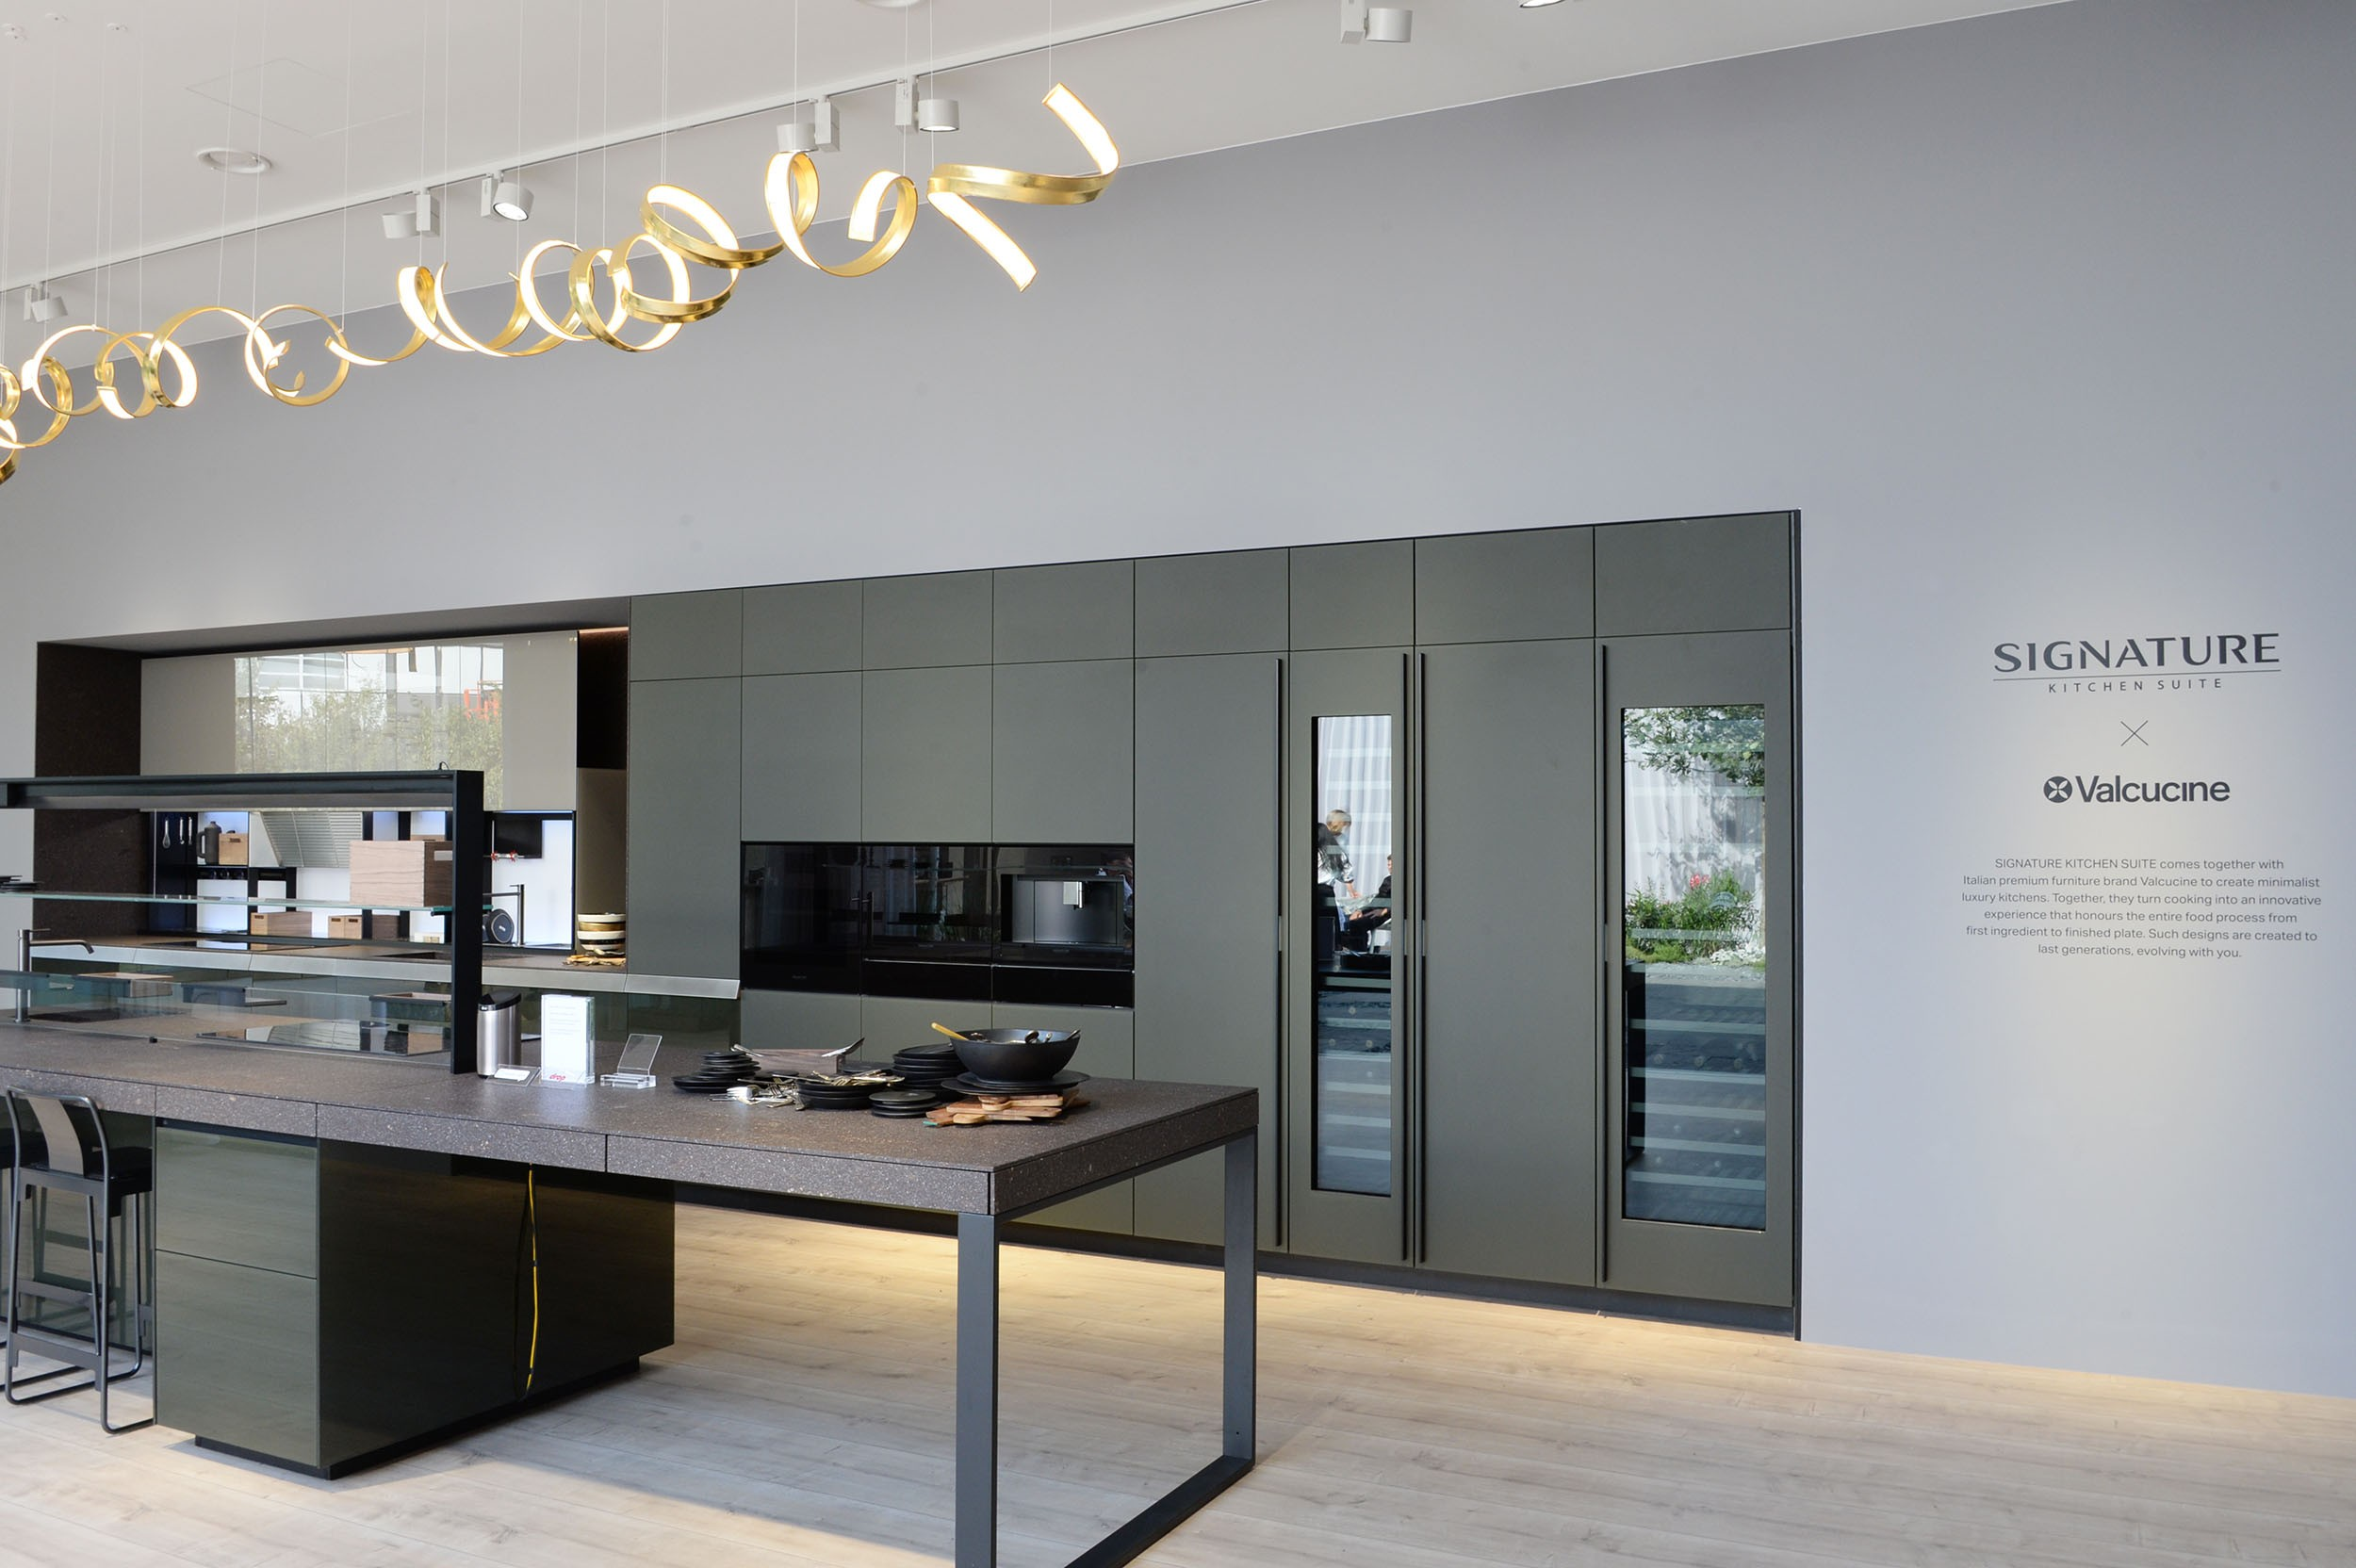 Portion of SIGNATURE KITCHEN SUITE's exhibition hall cooperated with Valcucine at IFA 2018